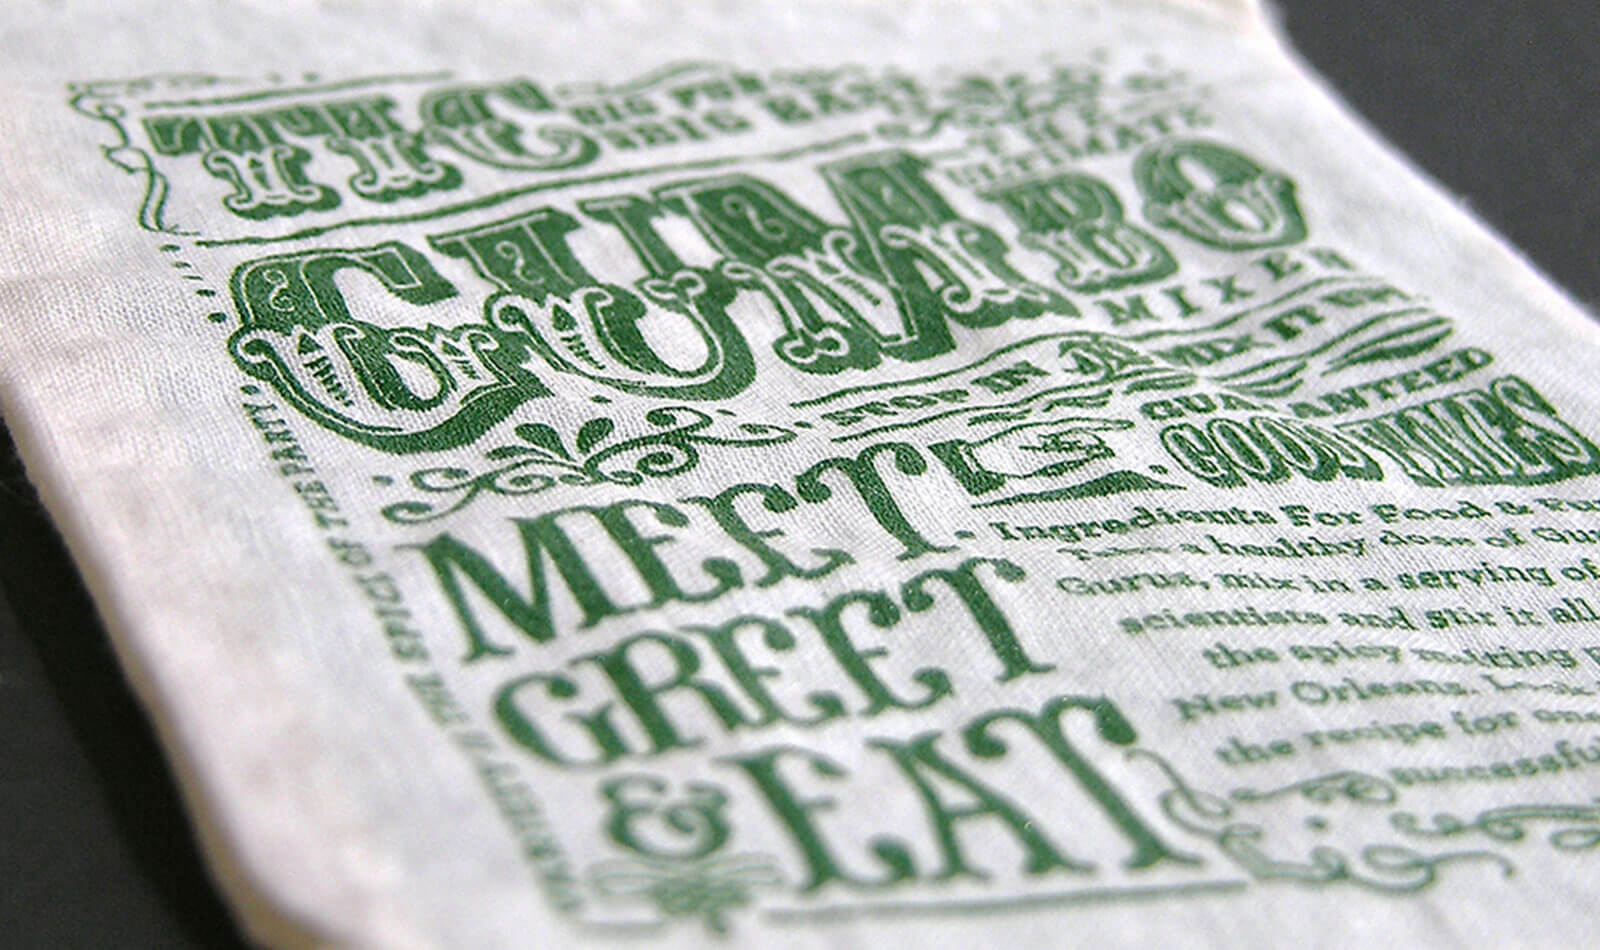 Printed muslin bag created by Blue Flame Thinking for TIC GUMs to hold event collateral.